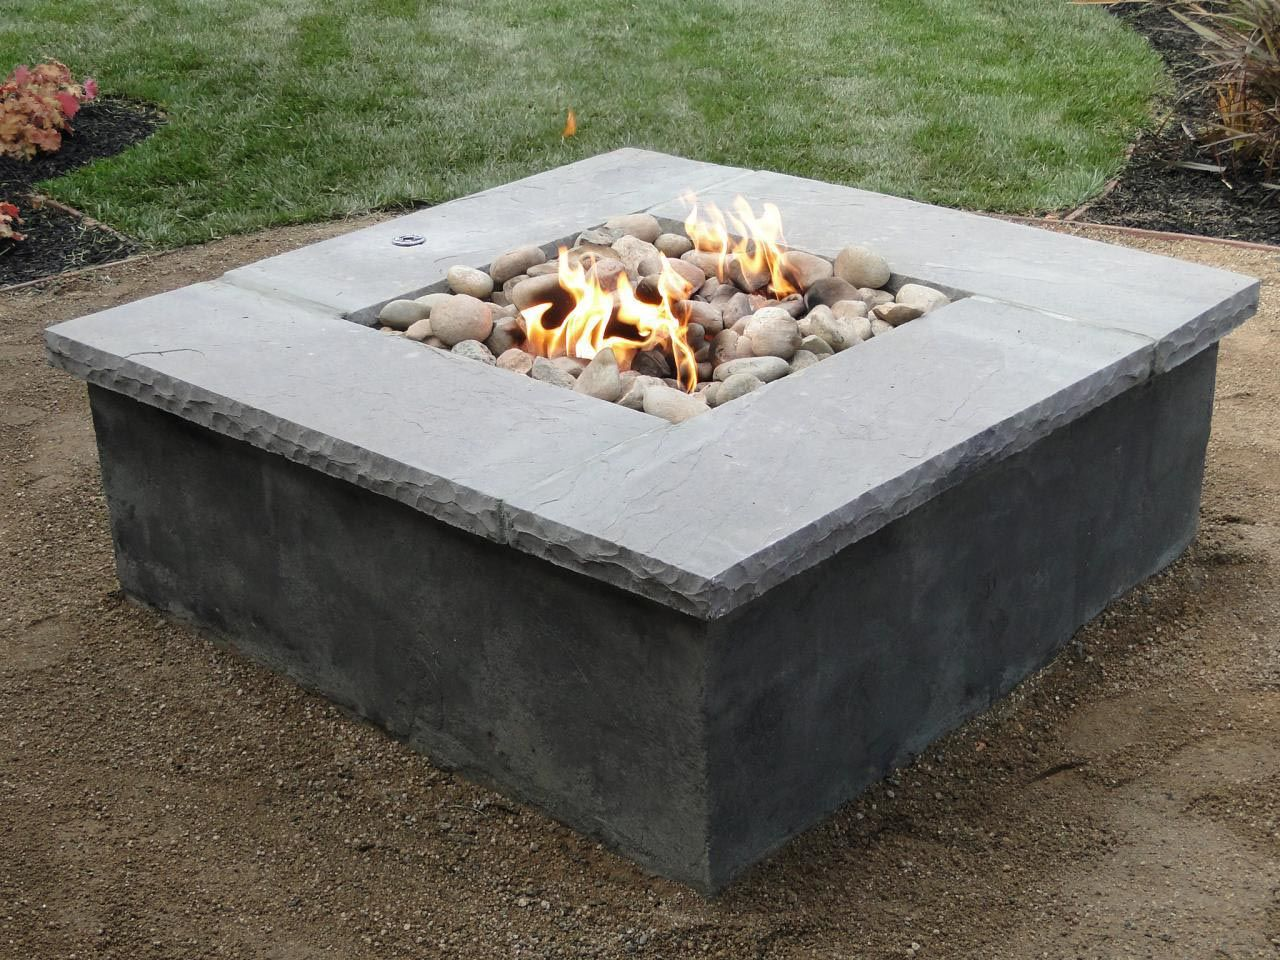 Outdoor fire pit designs pictures to pin on pinterest - 20 Outstanding Cinder Block Fire Pit Design Ideas For Outdoor